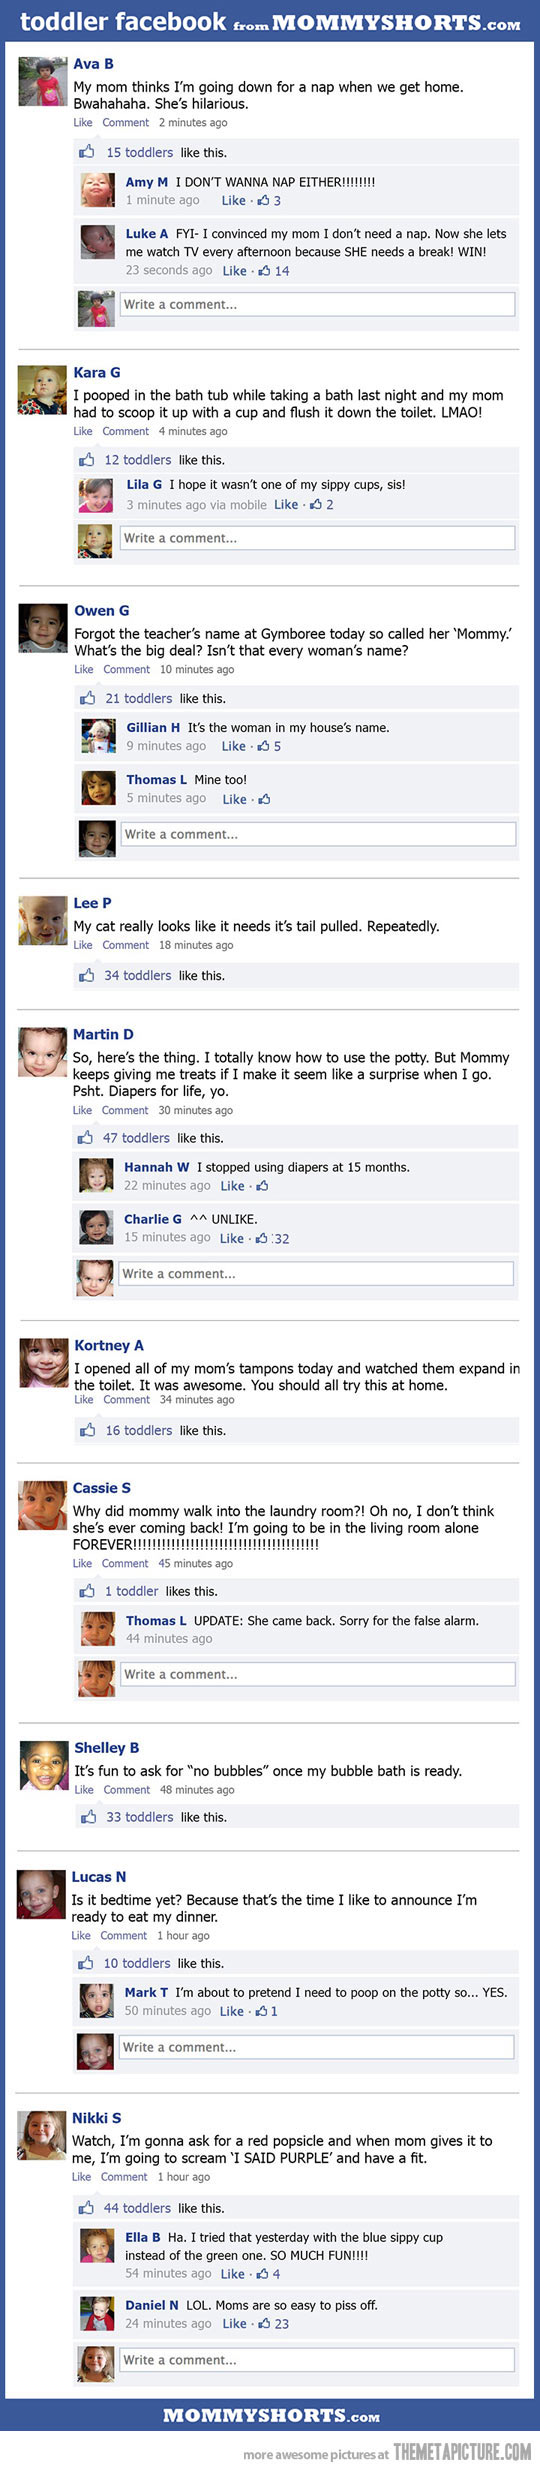 If toddlers were on facebook